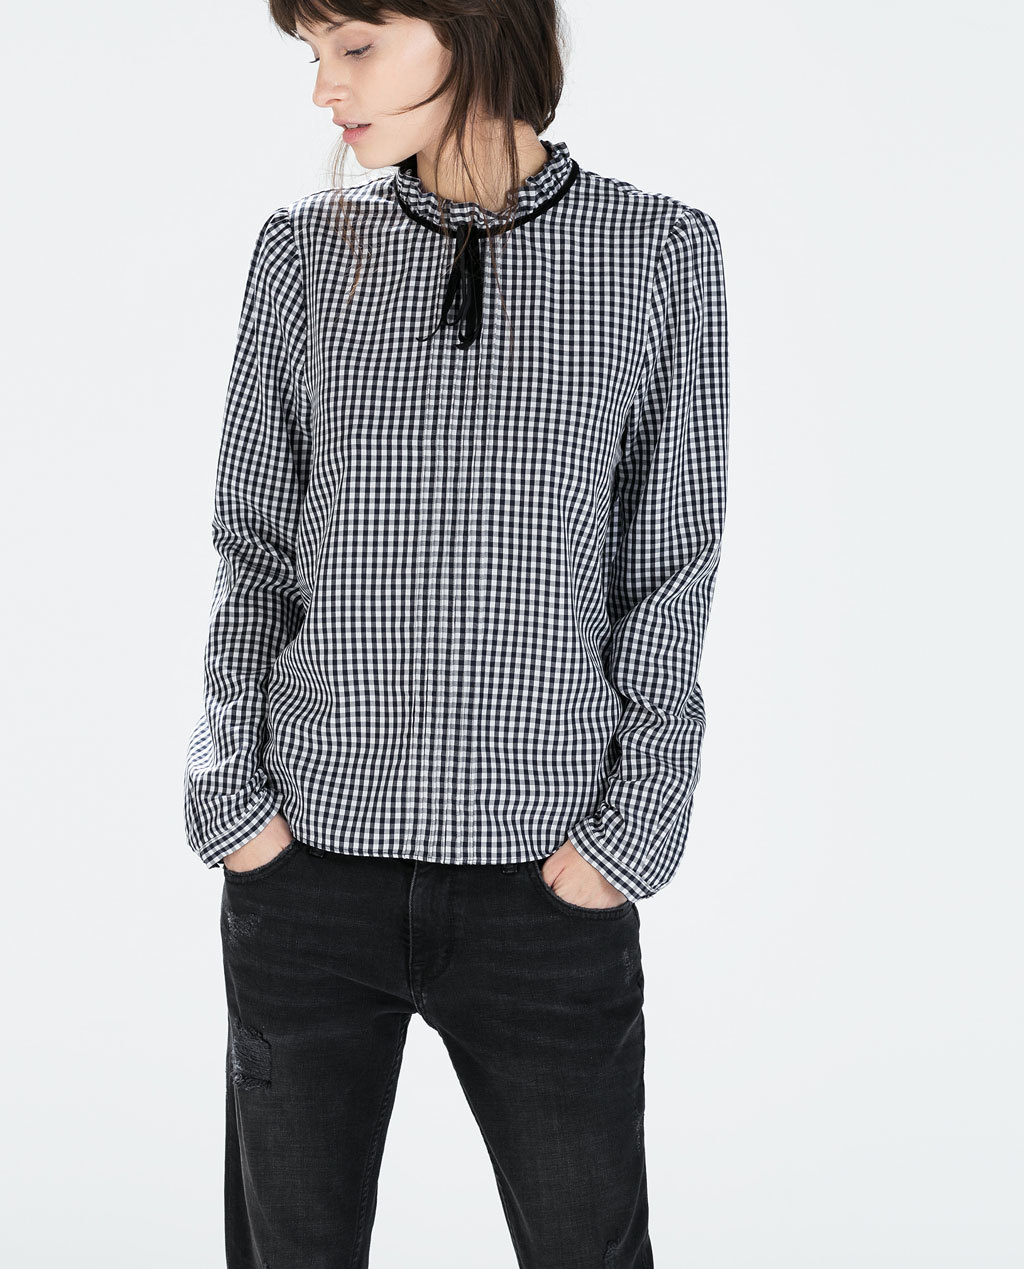 Gingham Blouse - neckline: high neck; pattern: checked/gingham; style: blouse; predominant colour: black; occasions: casual, creative work; length: standard; fit: loose; sleeve length: short sleeve; sleeve style: standard; texture group: cotton feel fabrics; pattern type: fabric; season: a/w 2014; pattern size: big & busy (top); wardrobe: highlight